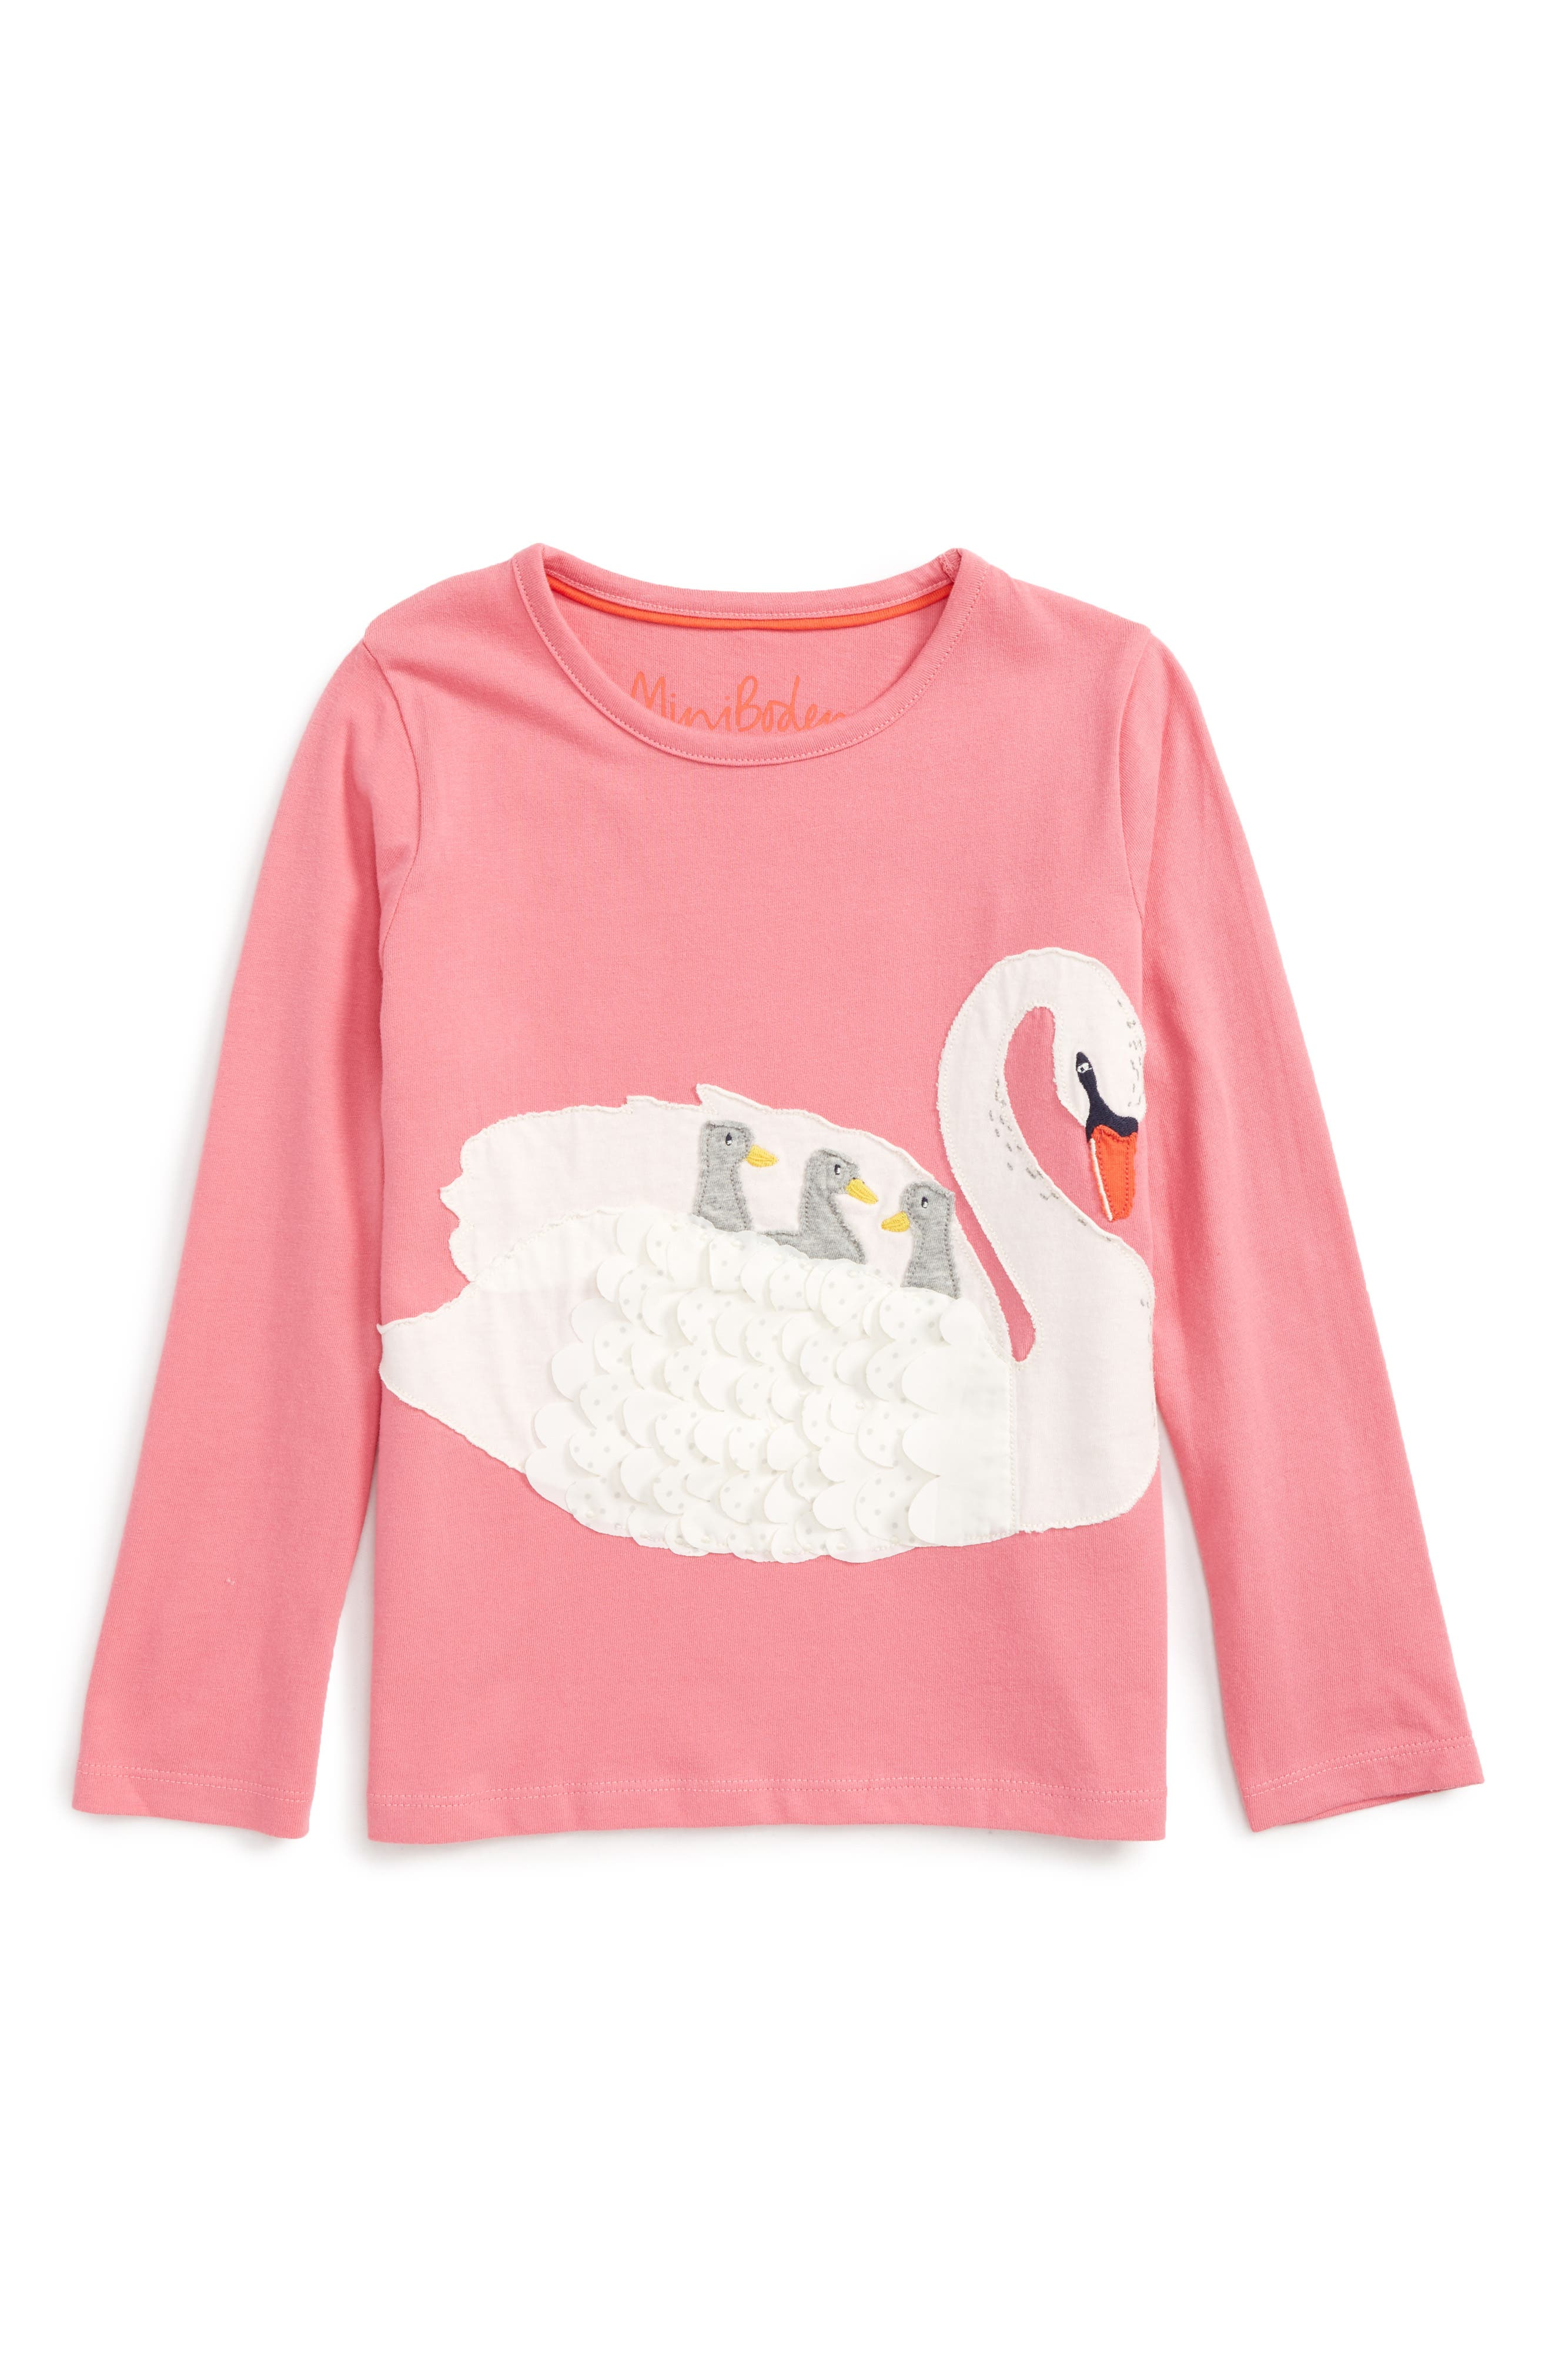 MINI BODEN Boden Big Appliqué T-Shirt